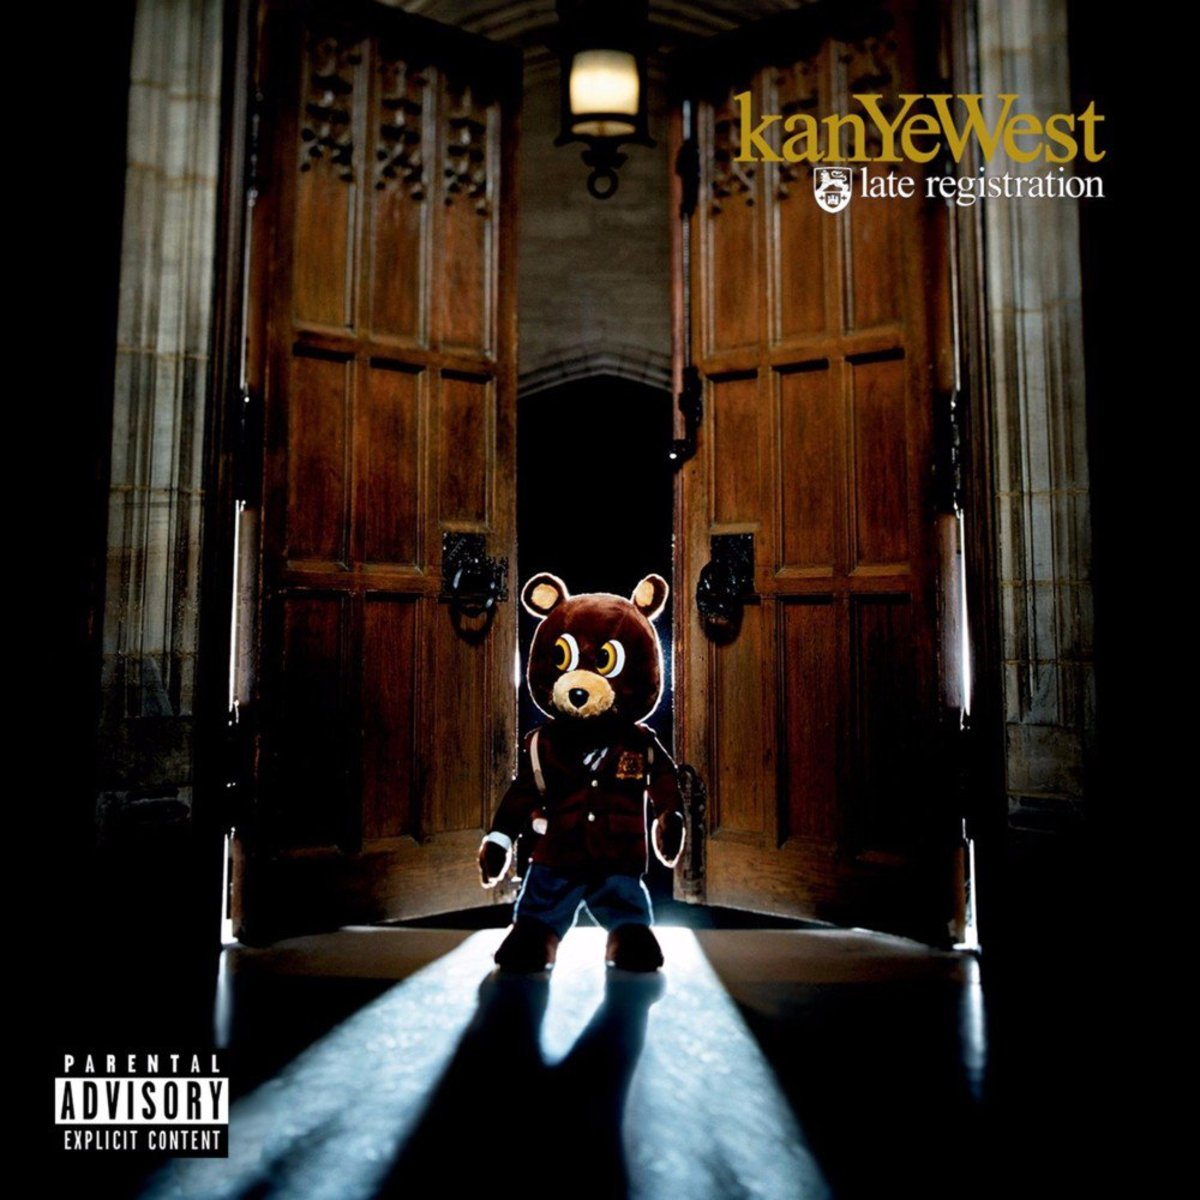 kanye-west-late-registration